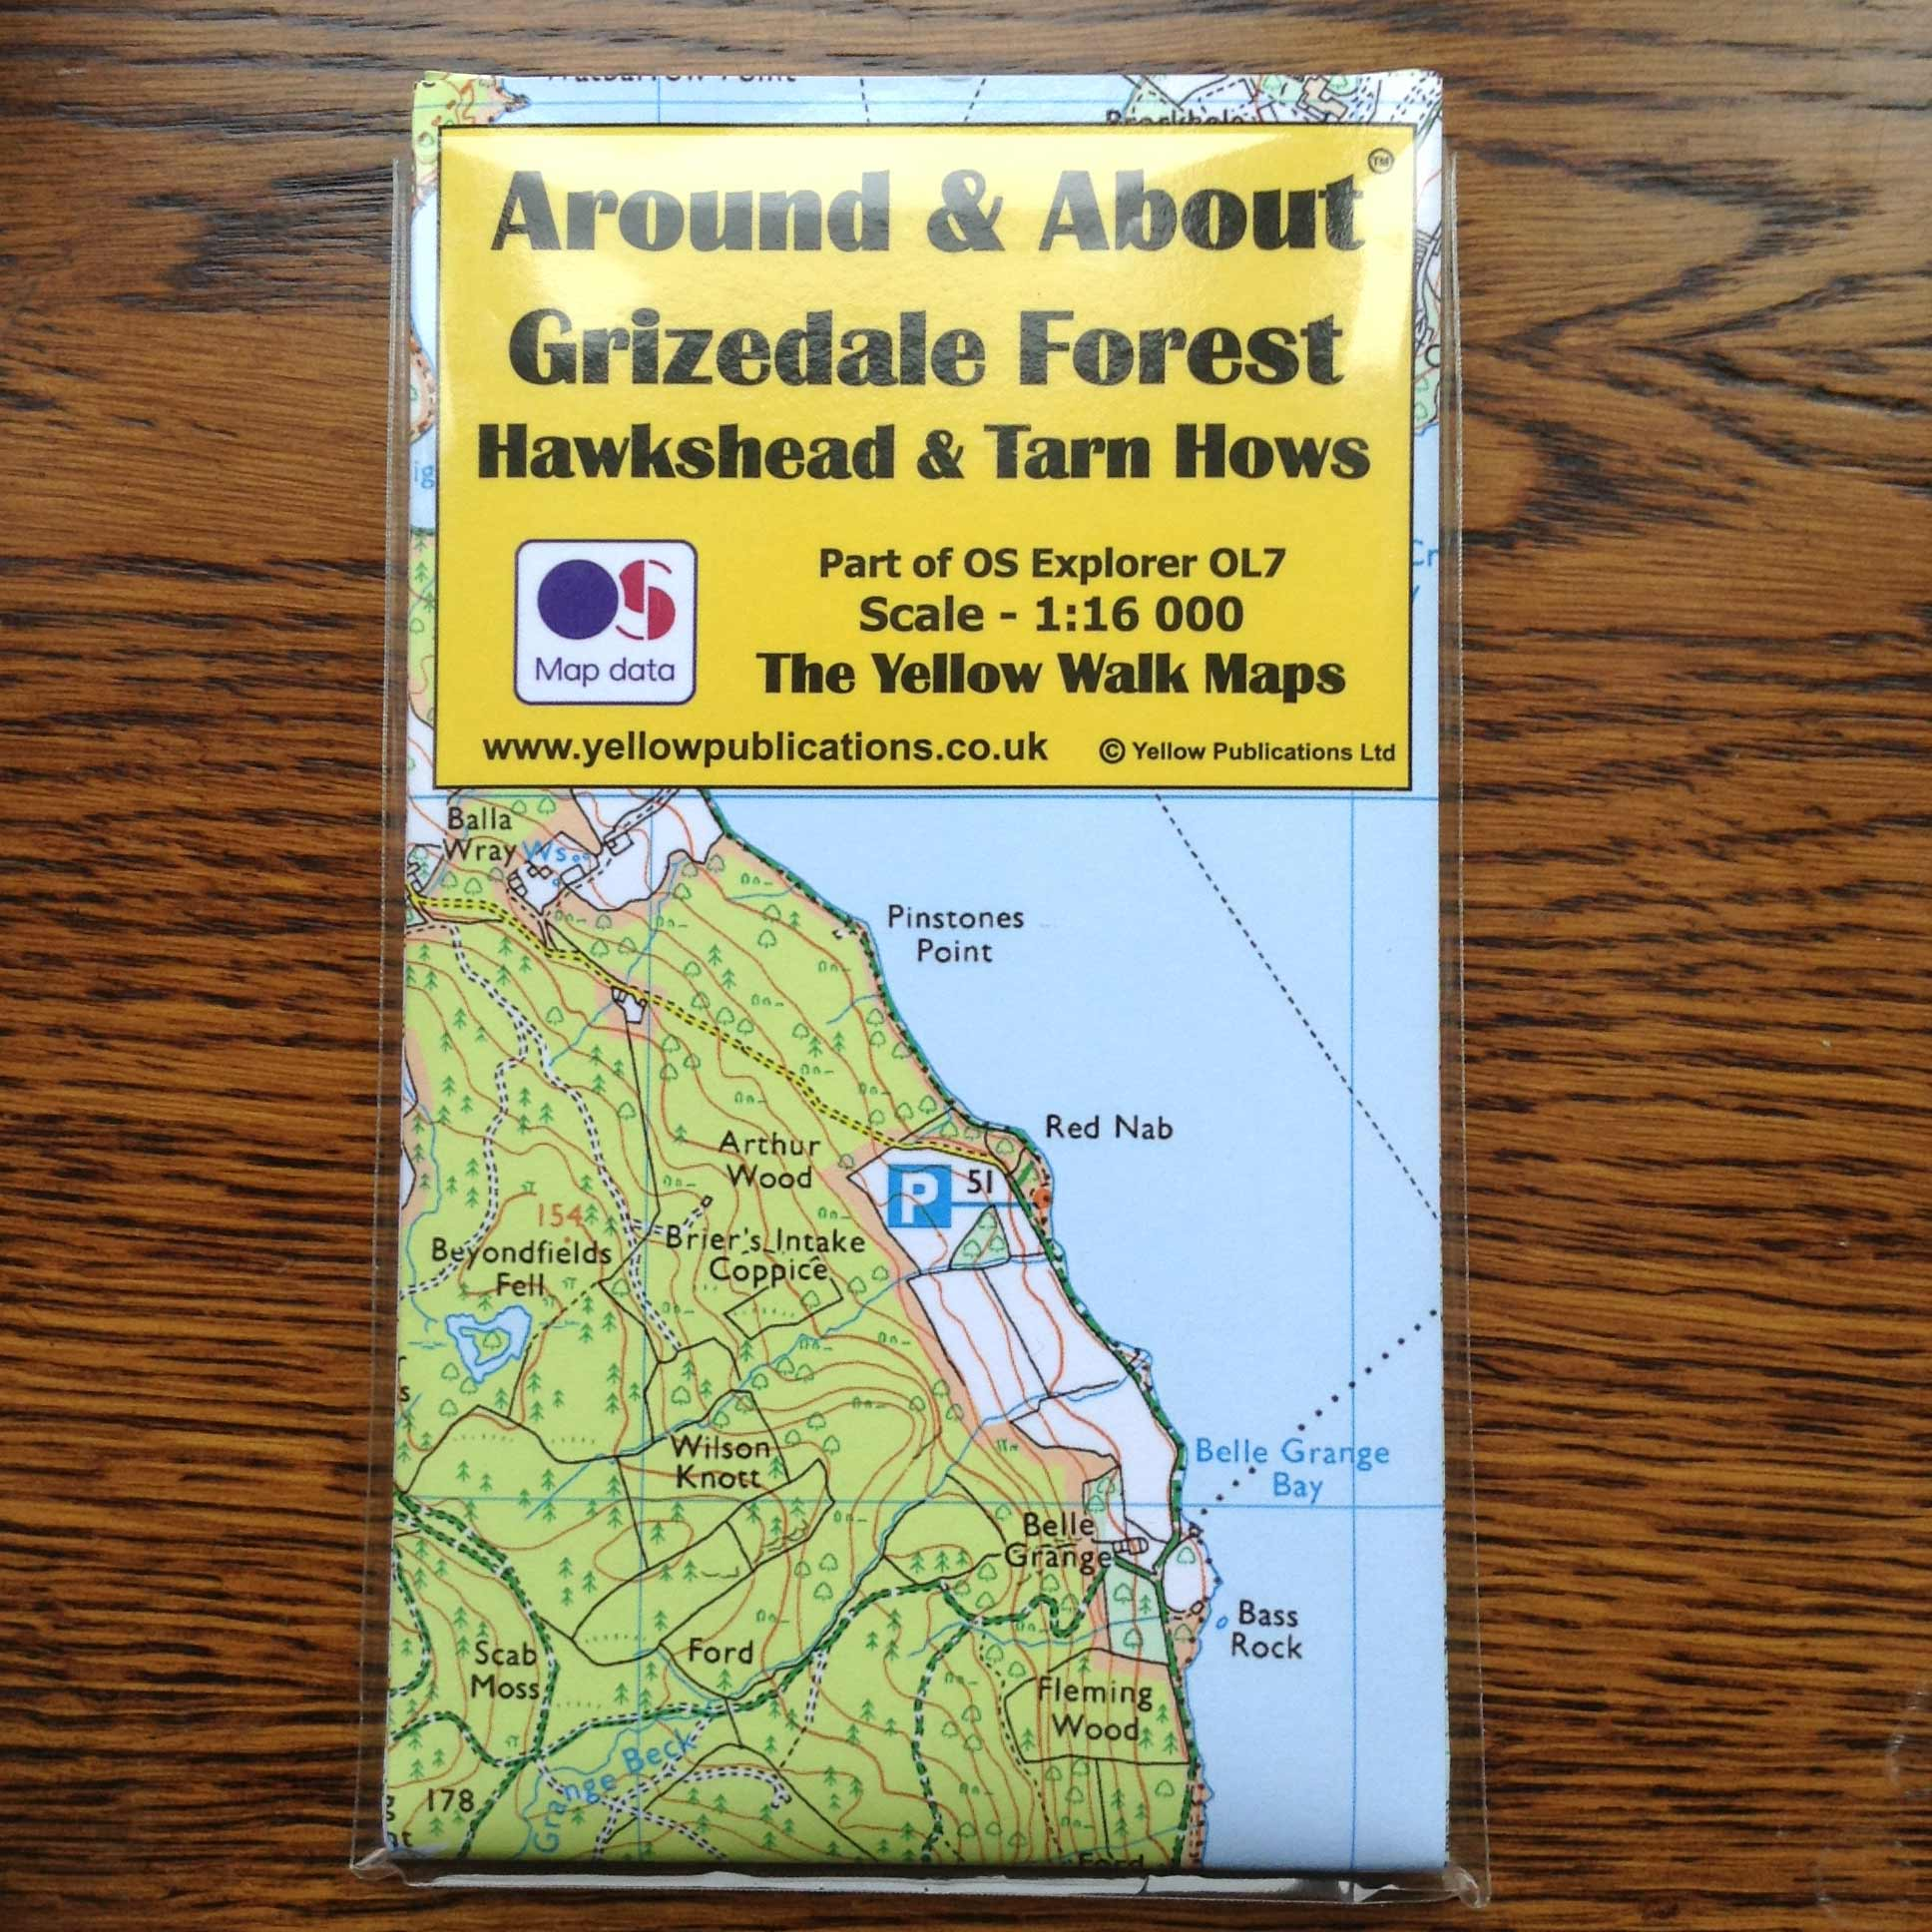 Grizedale Forest Hawshead & Tarn Hows map